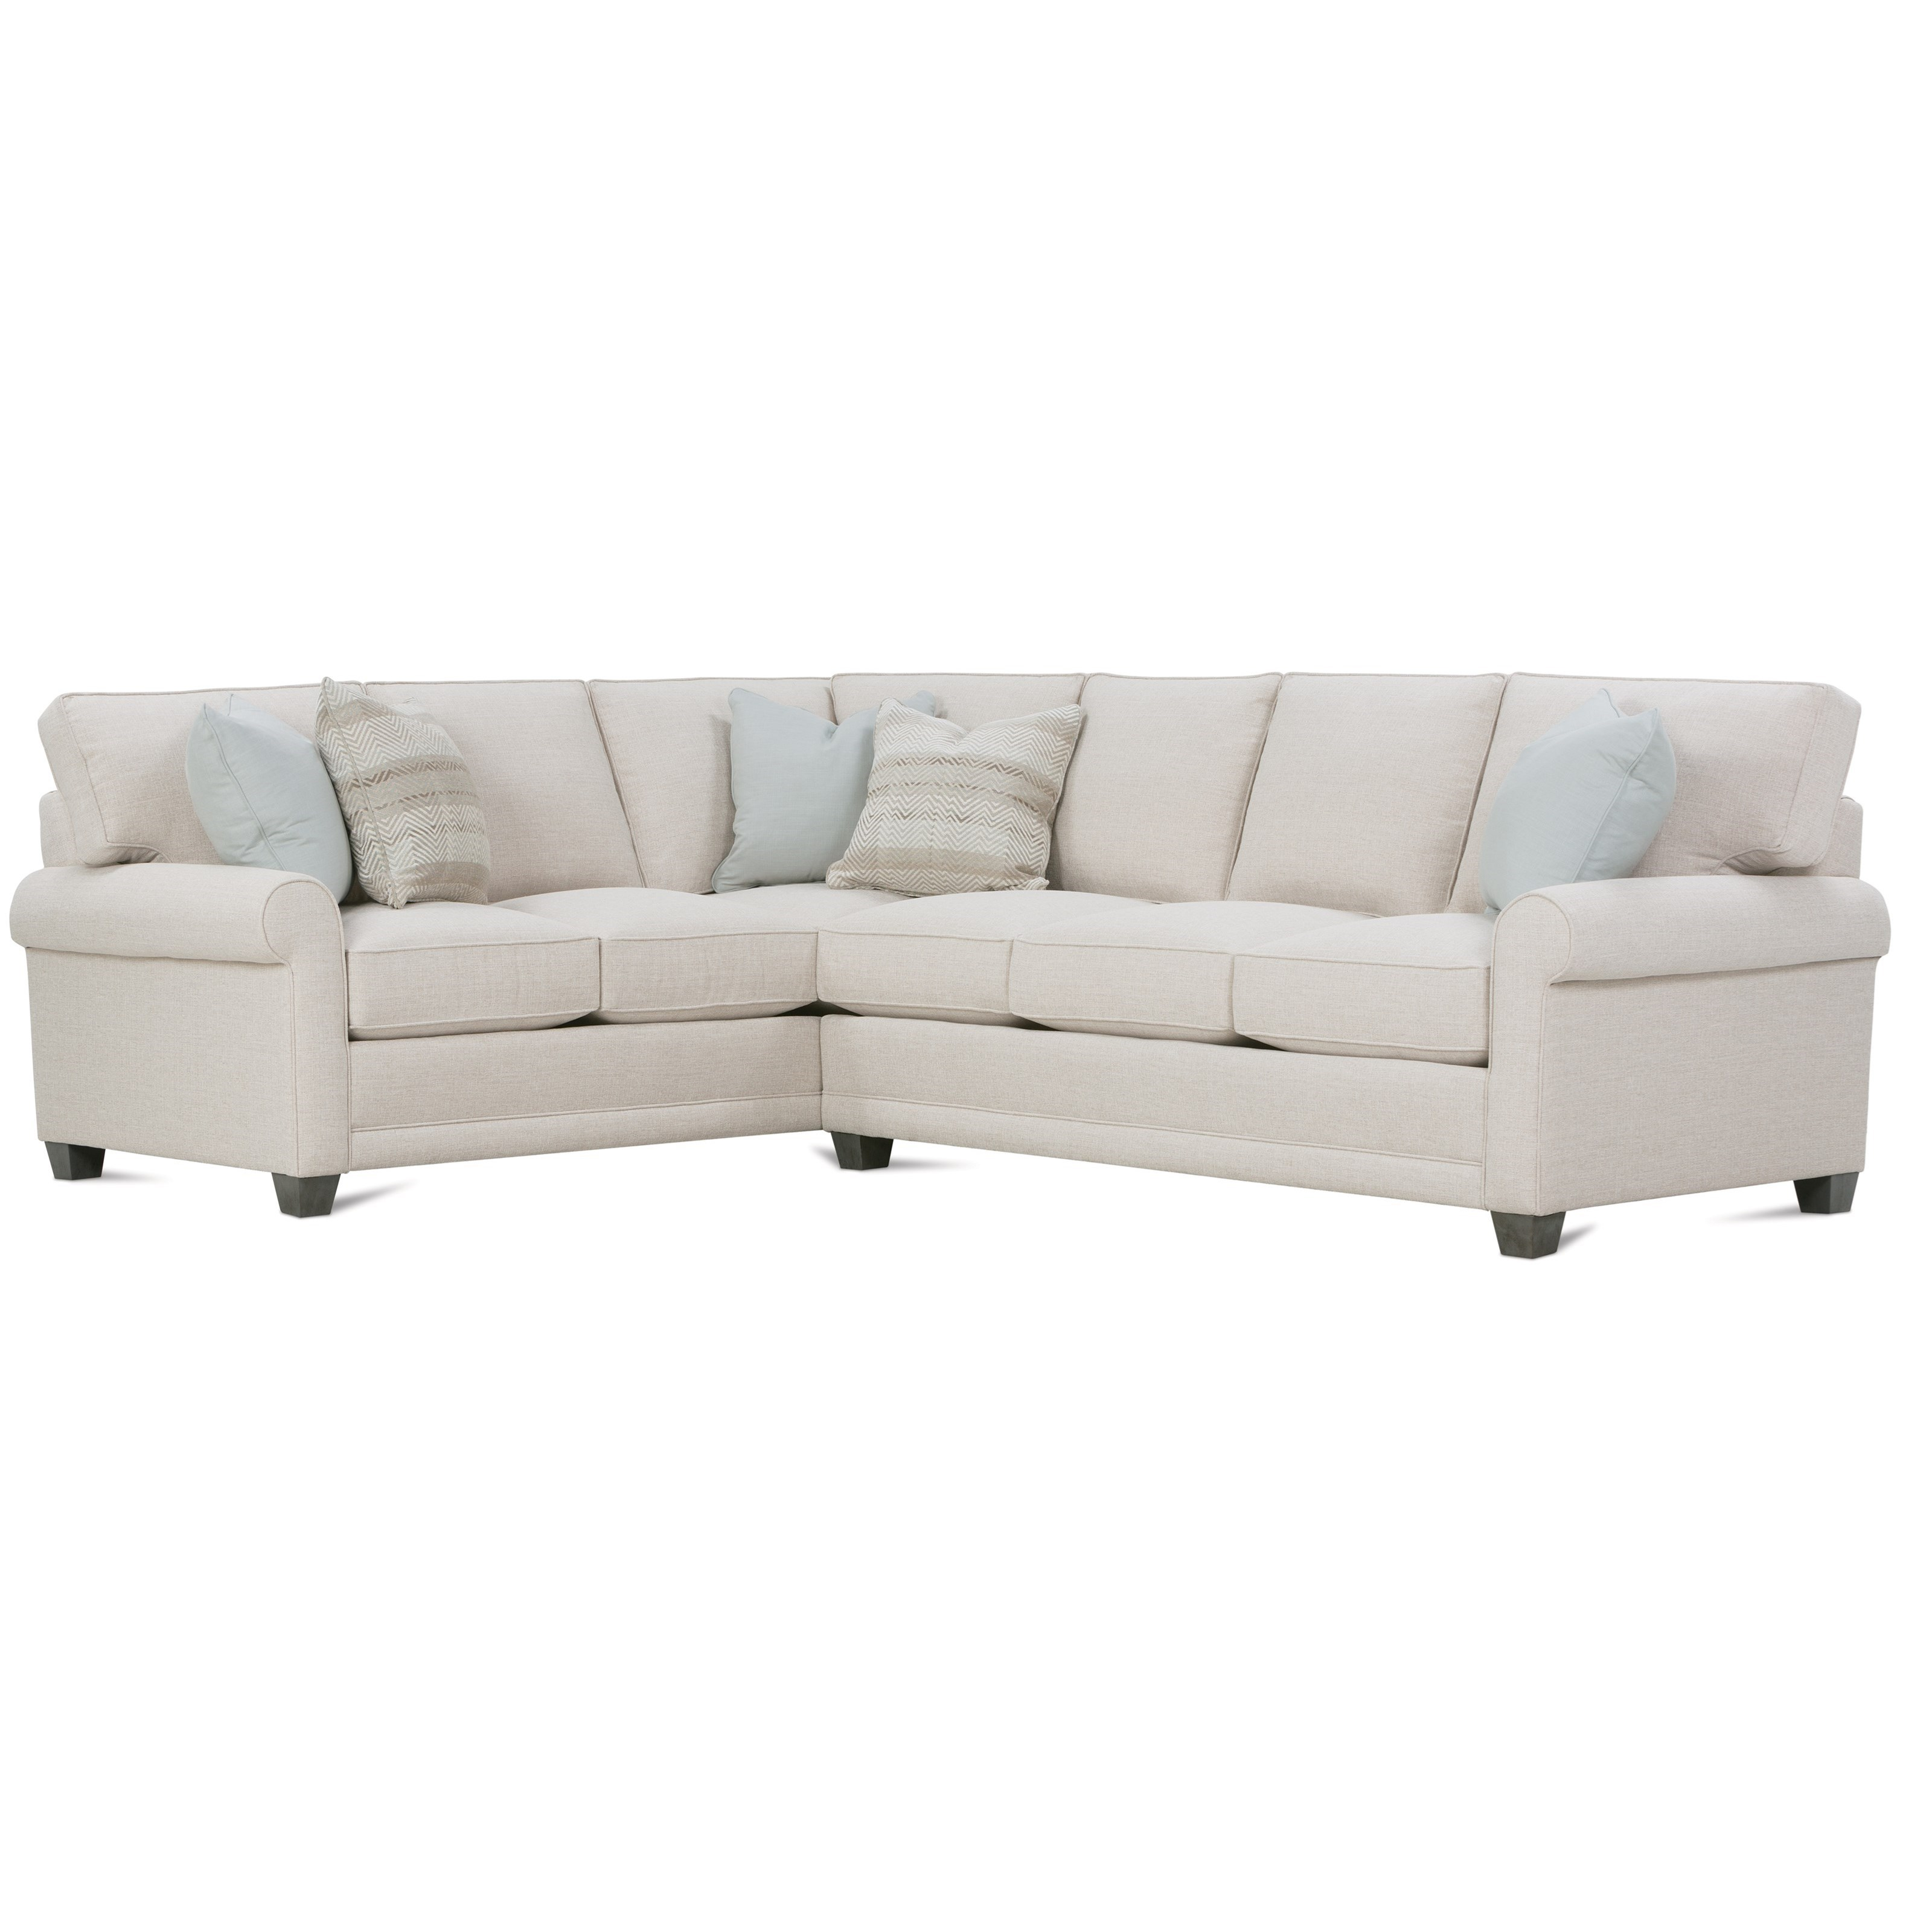 Rowe Selections I Customizable Sectional Sofa With Rolled